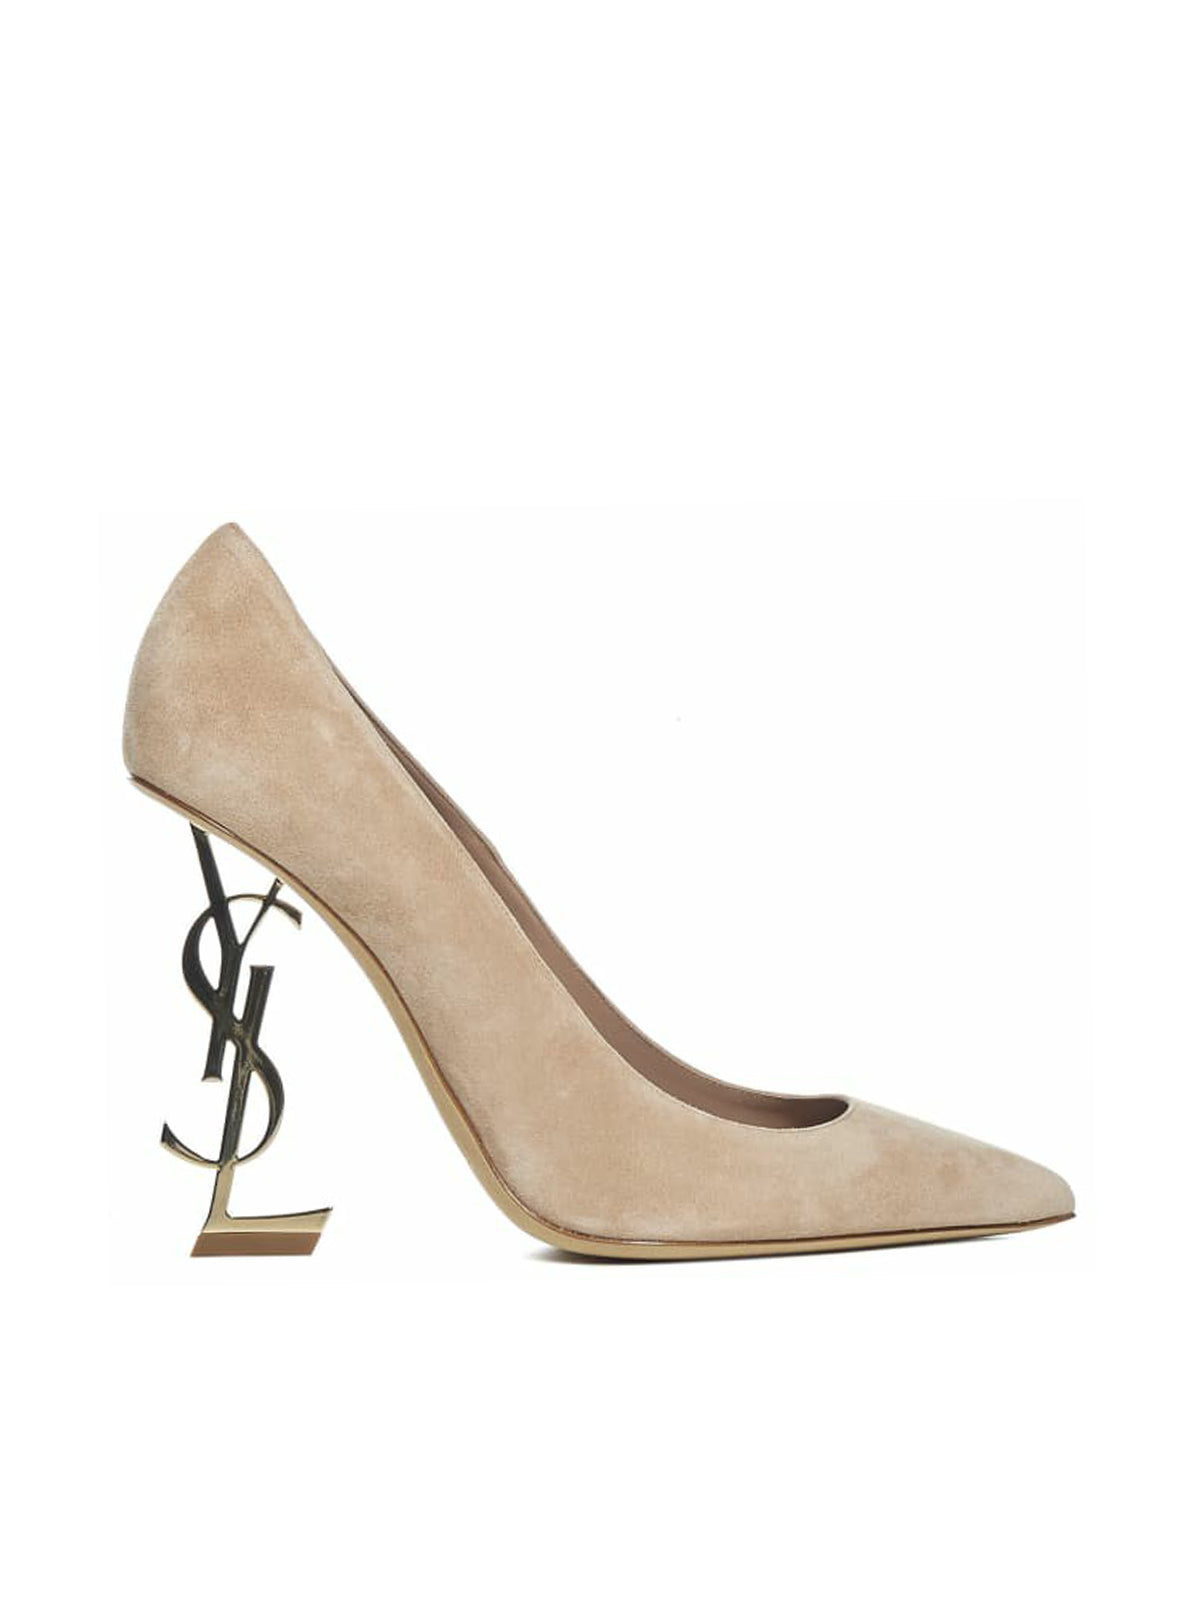 OPYUM SUEDE PUMP WITH LIGHT GOLDEN HEEL